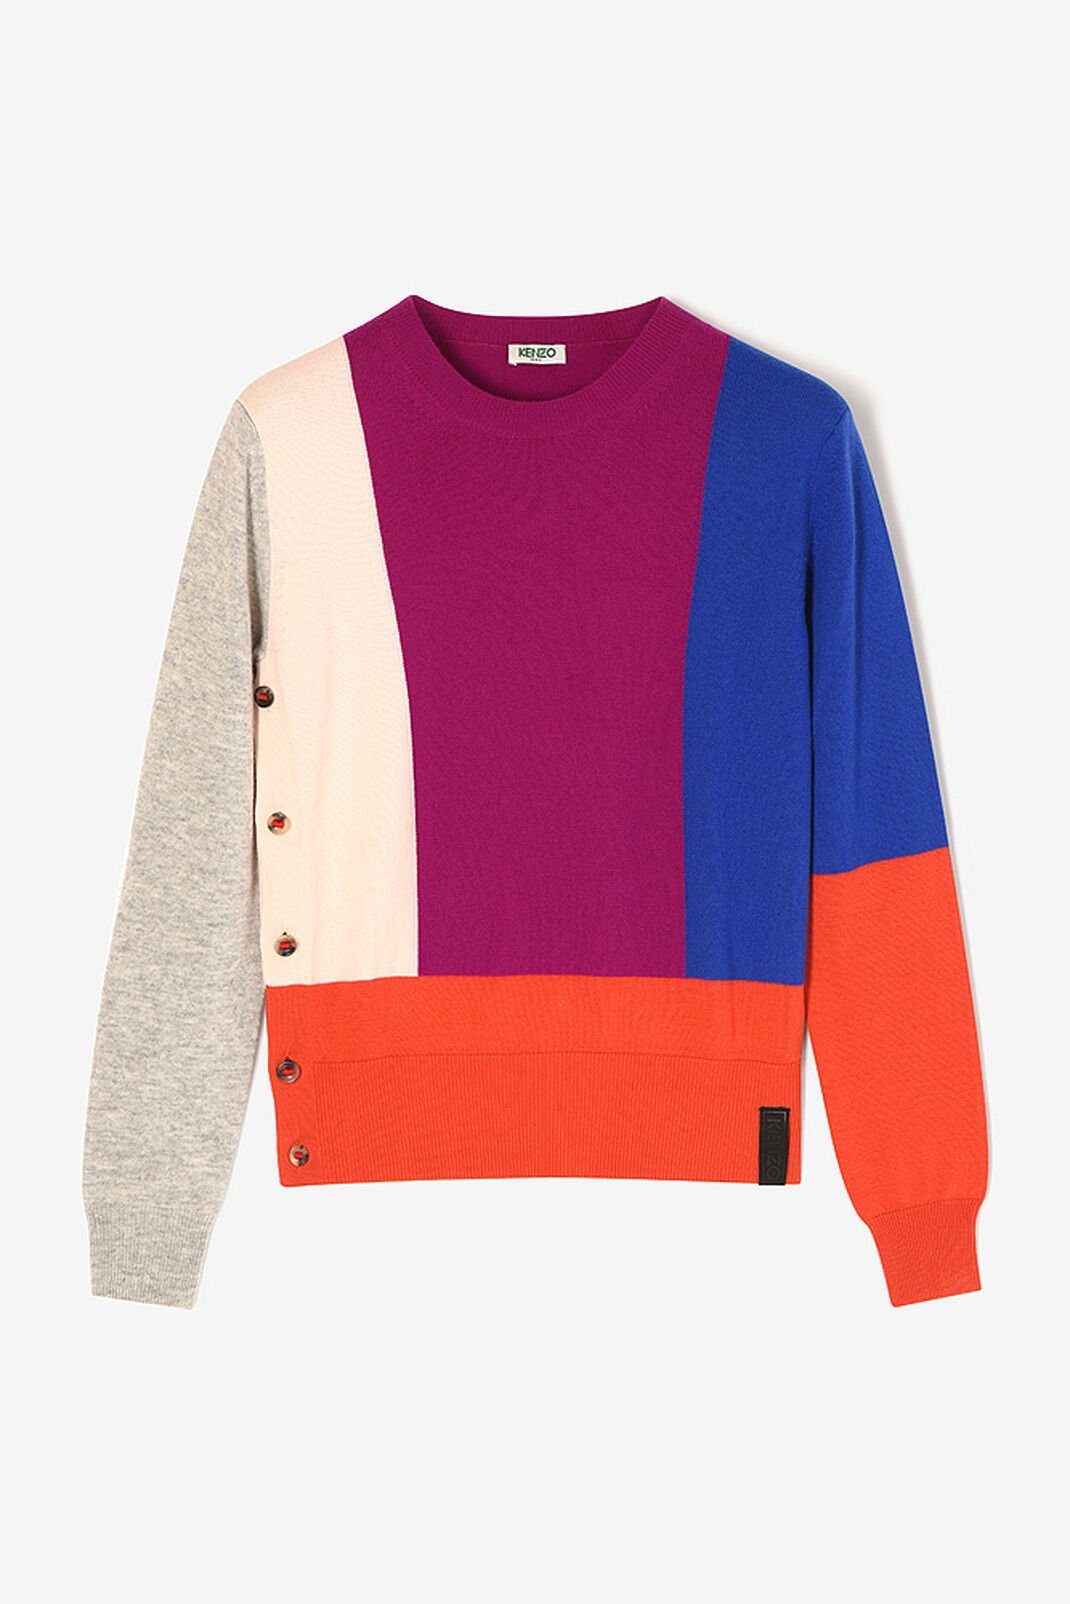 DEEP FUSCHIA Colourblock Sweater for women KENZO